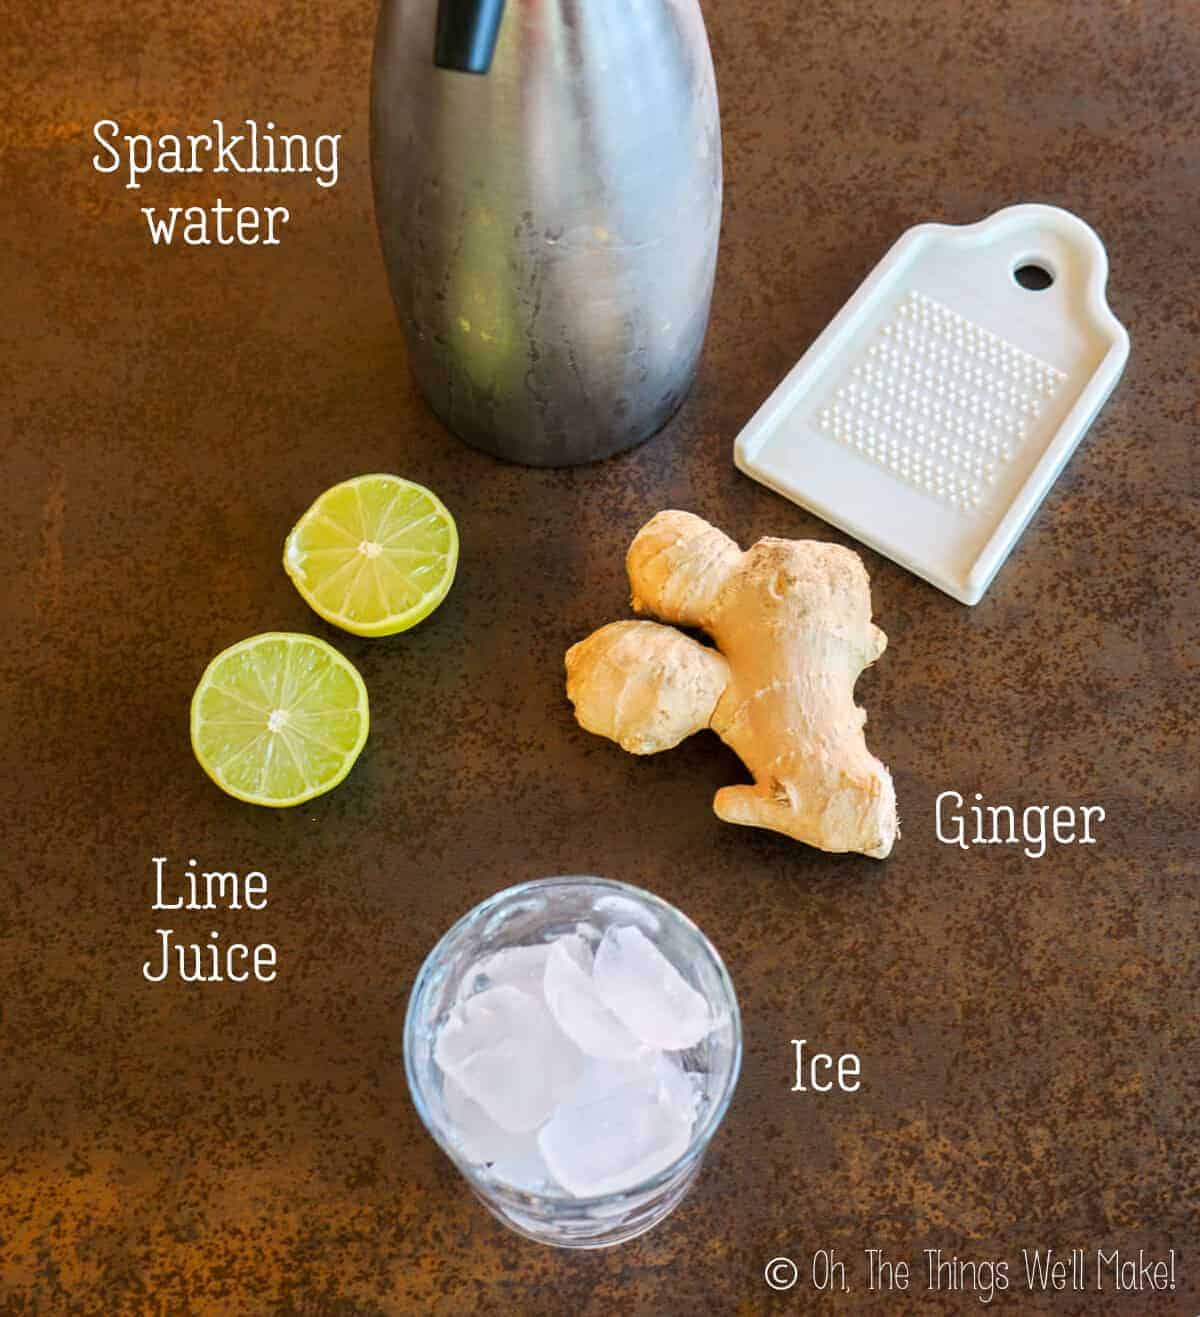 overhead view of ingredients for homemade ginger ale